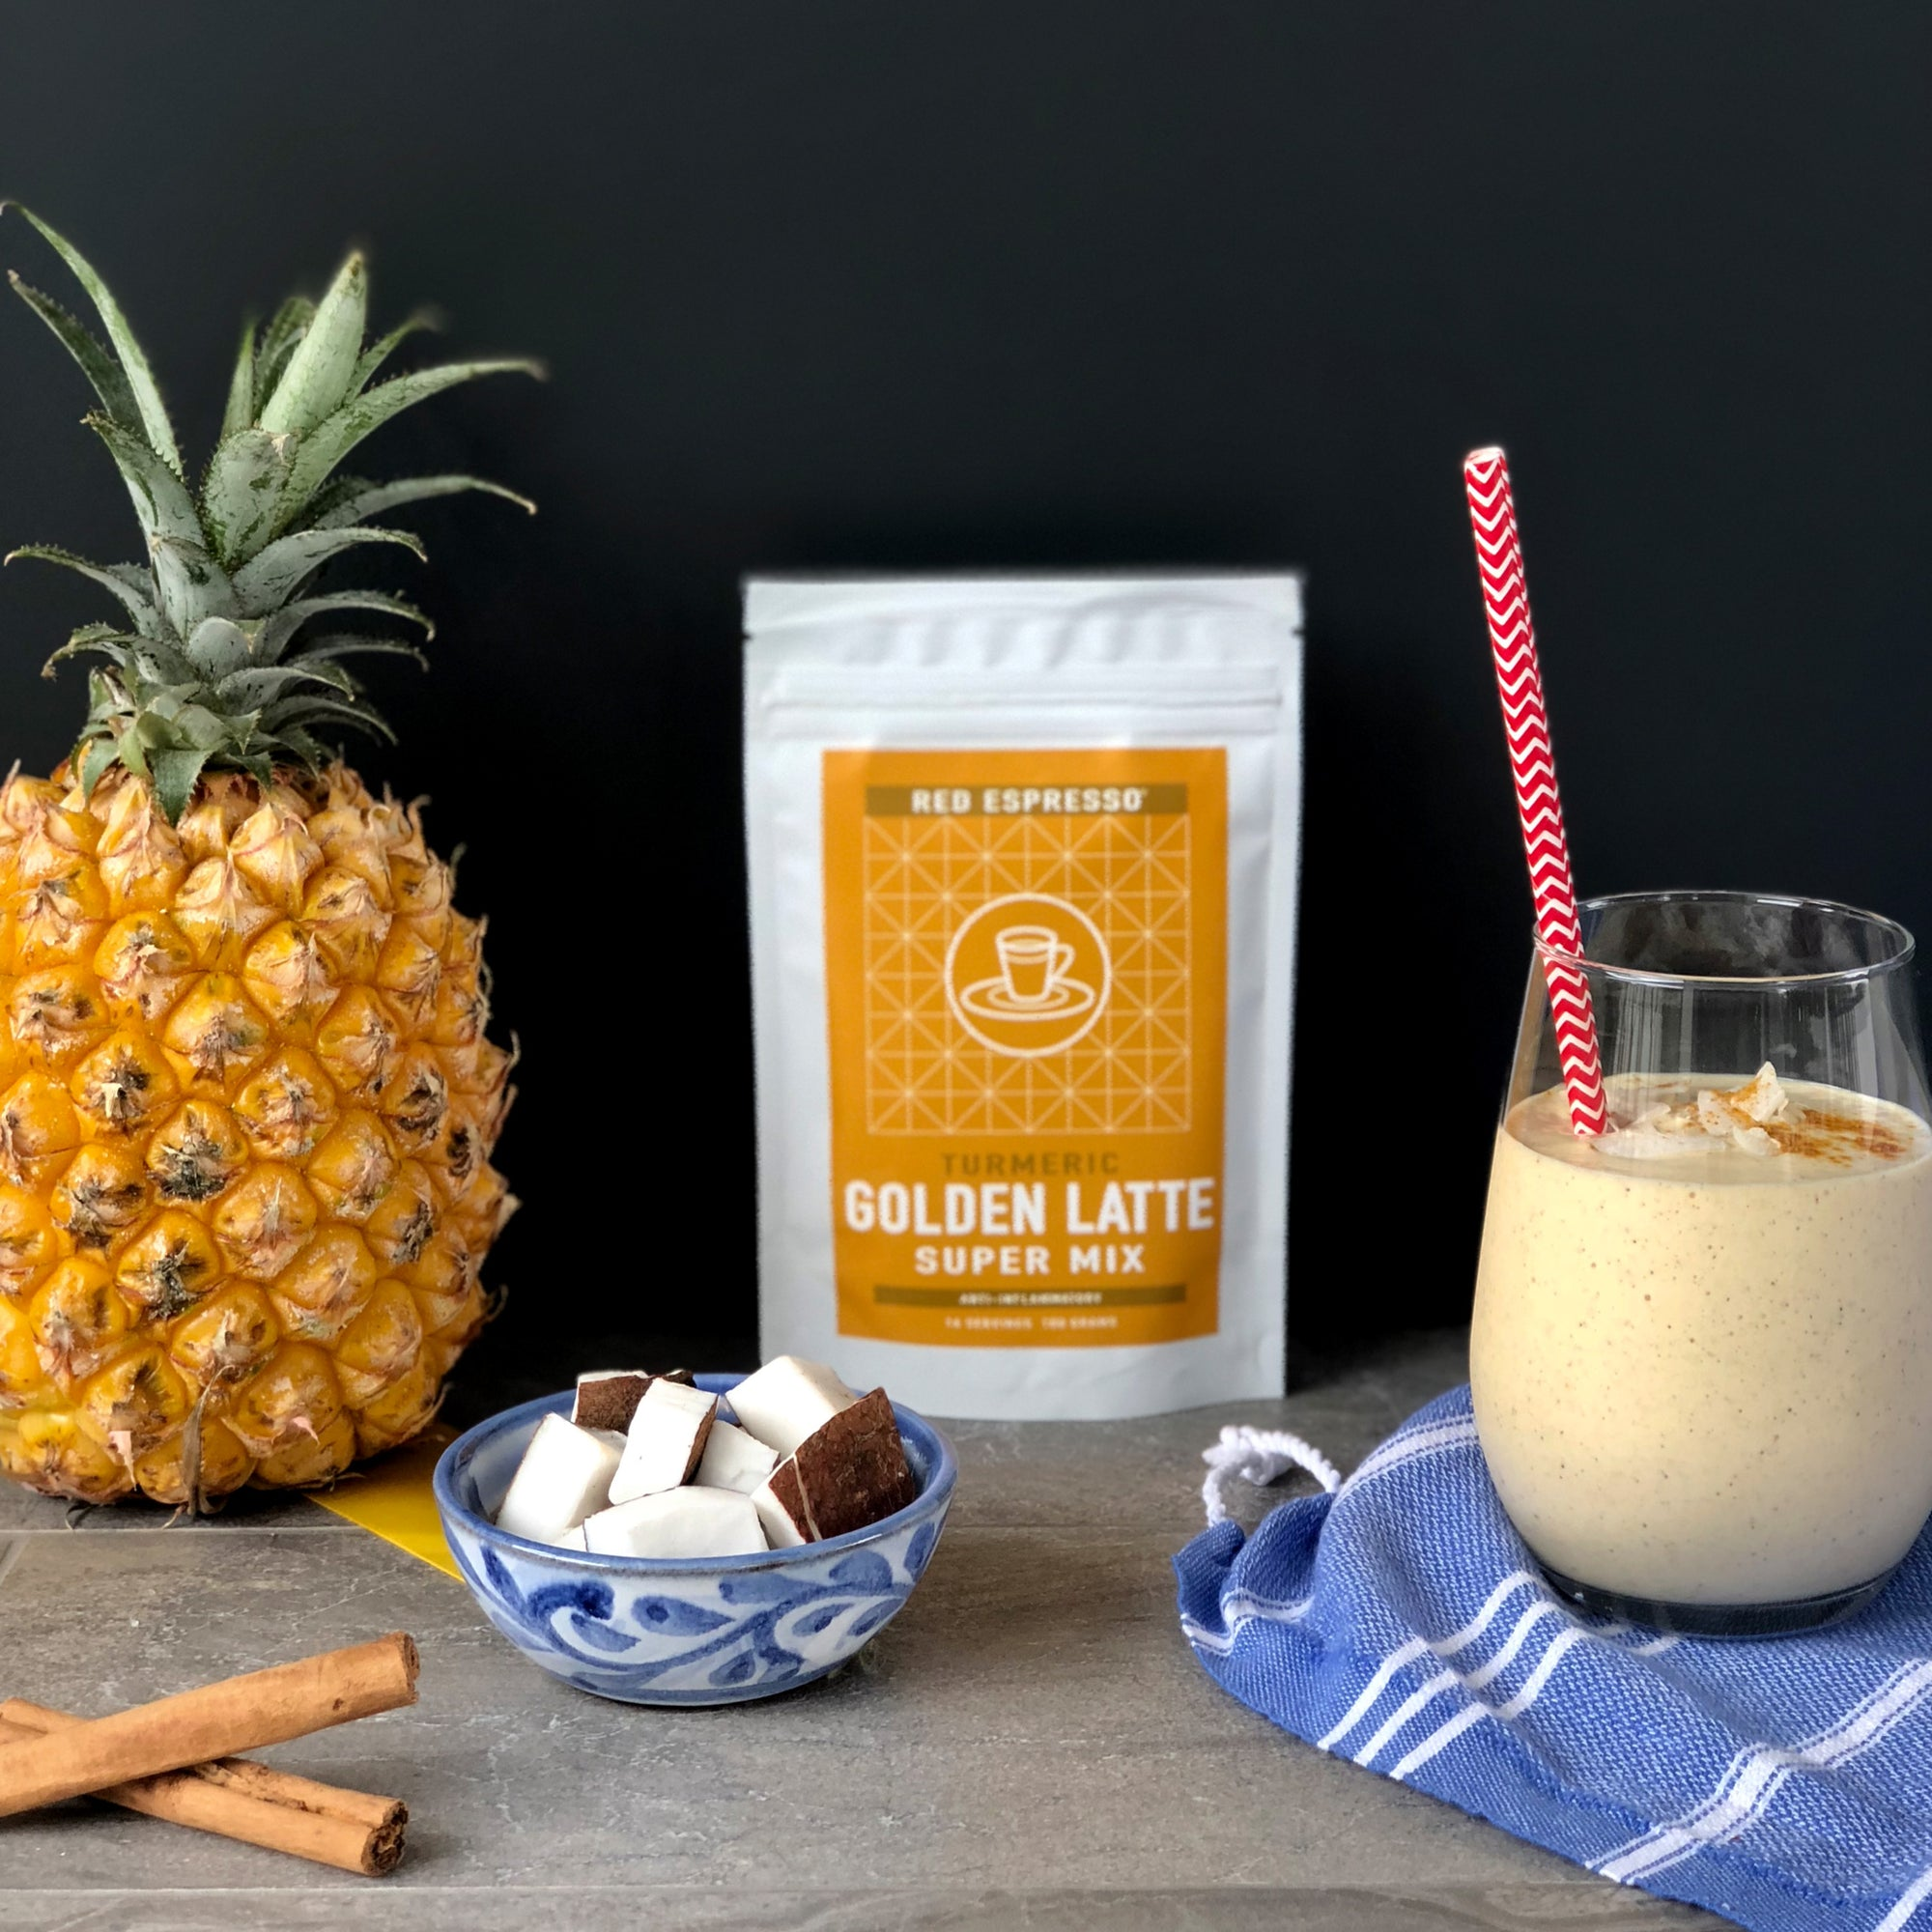 Pineapple turmeric smoothie